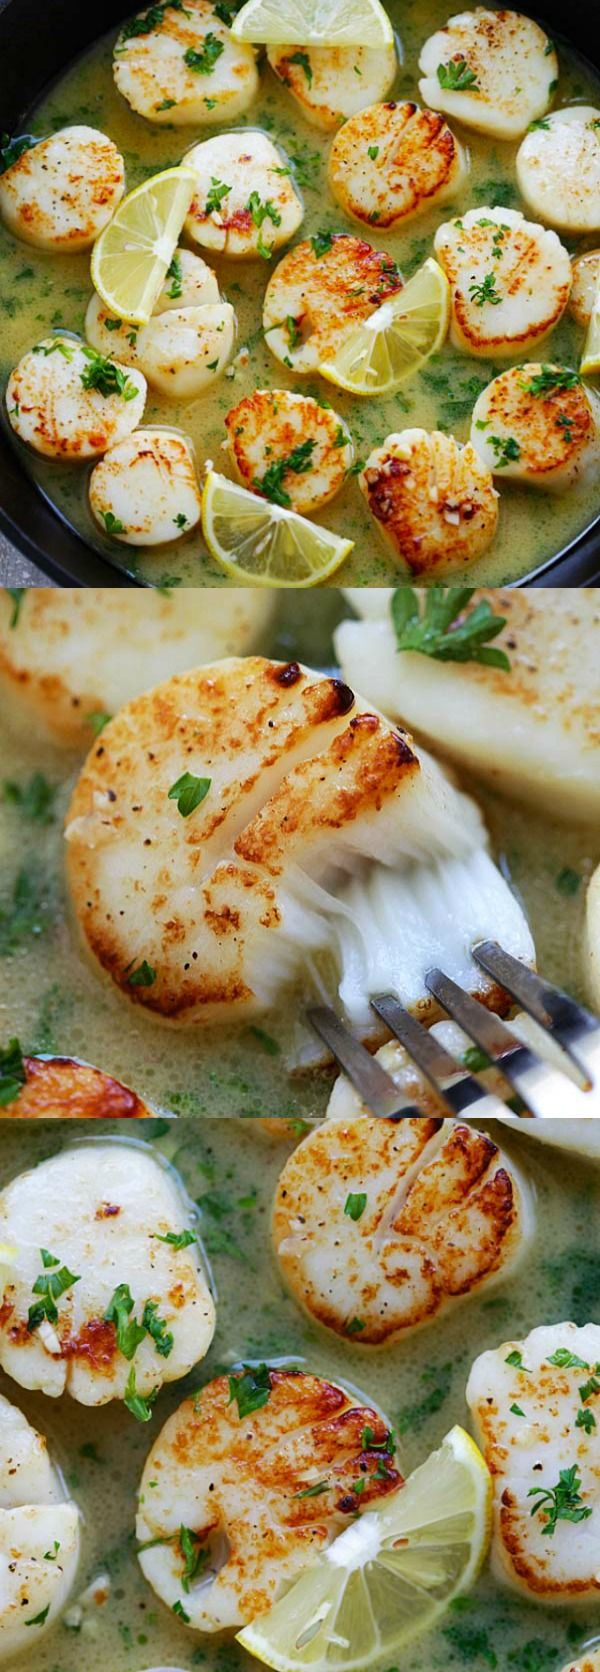 Garlic Butter Scallops with Lemon Sauce – better than restaurant's pan-seared scallops with buttery lemon sauce, cheaper and so delicious | rasamalaysia.com